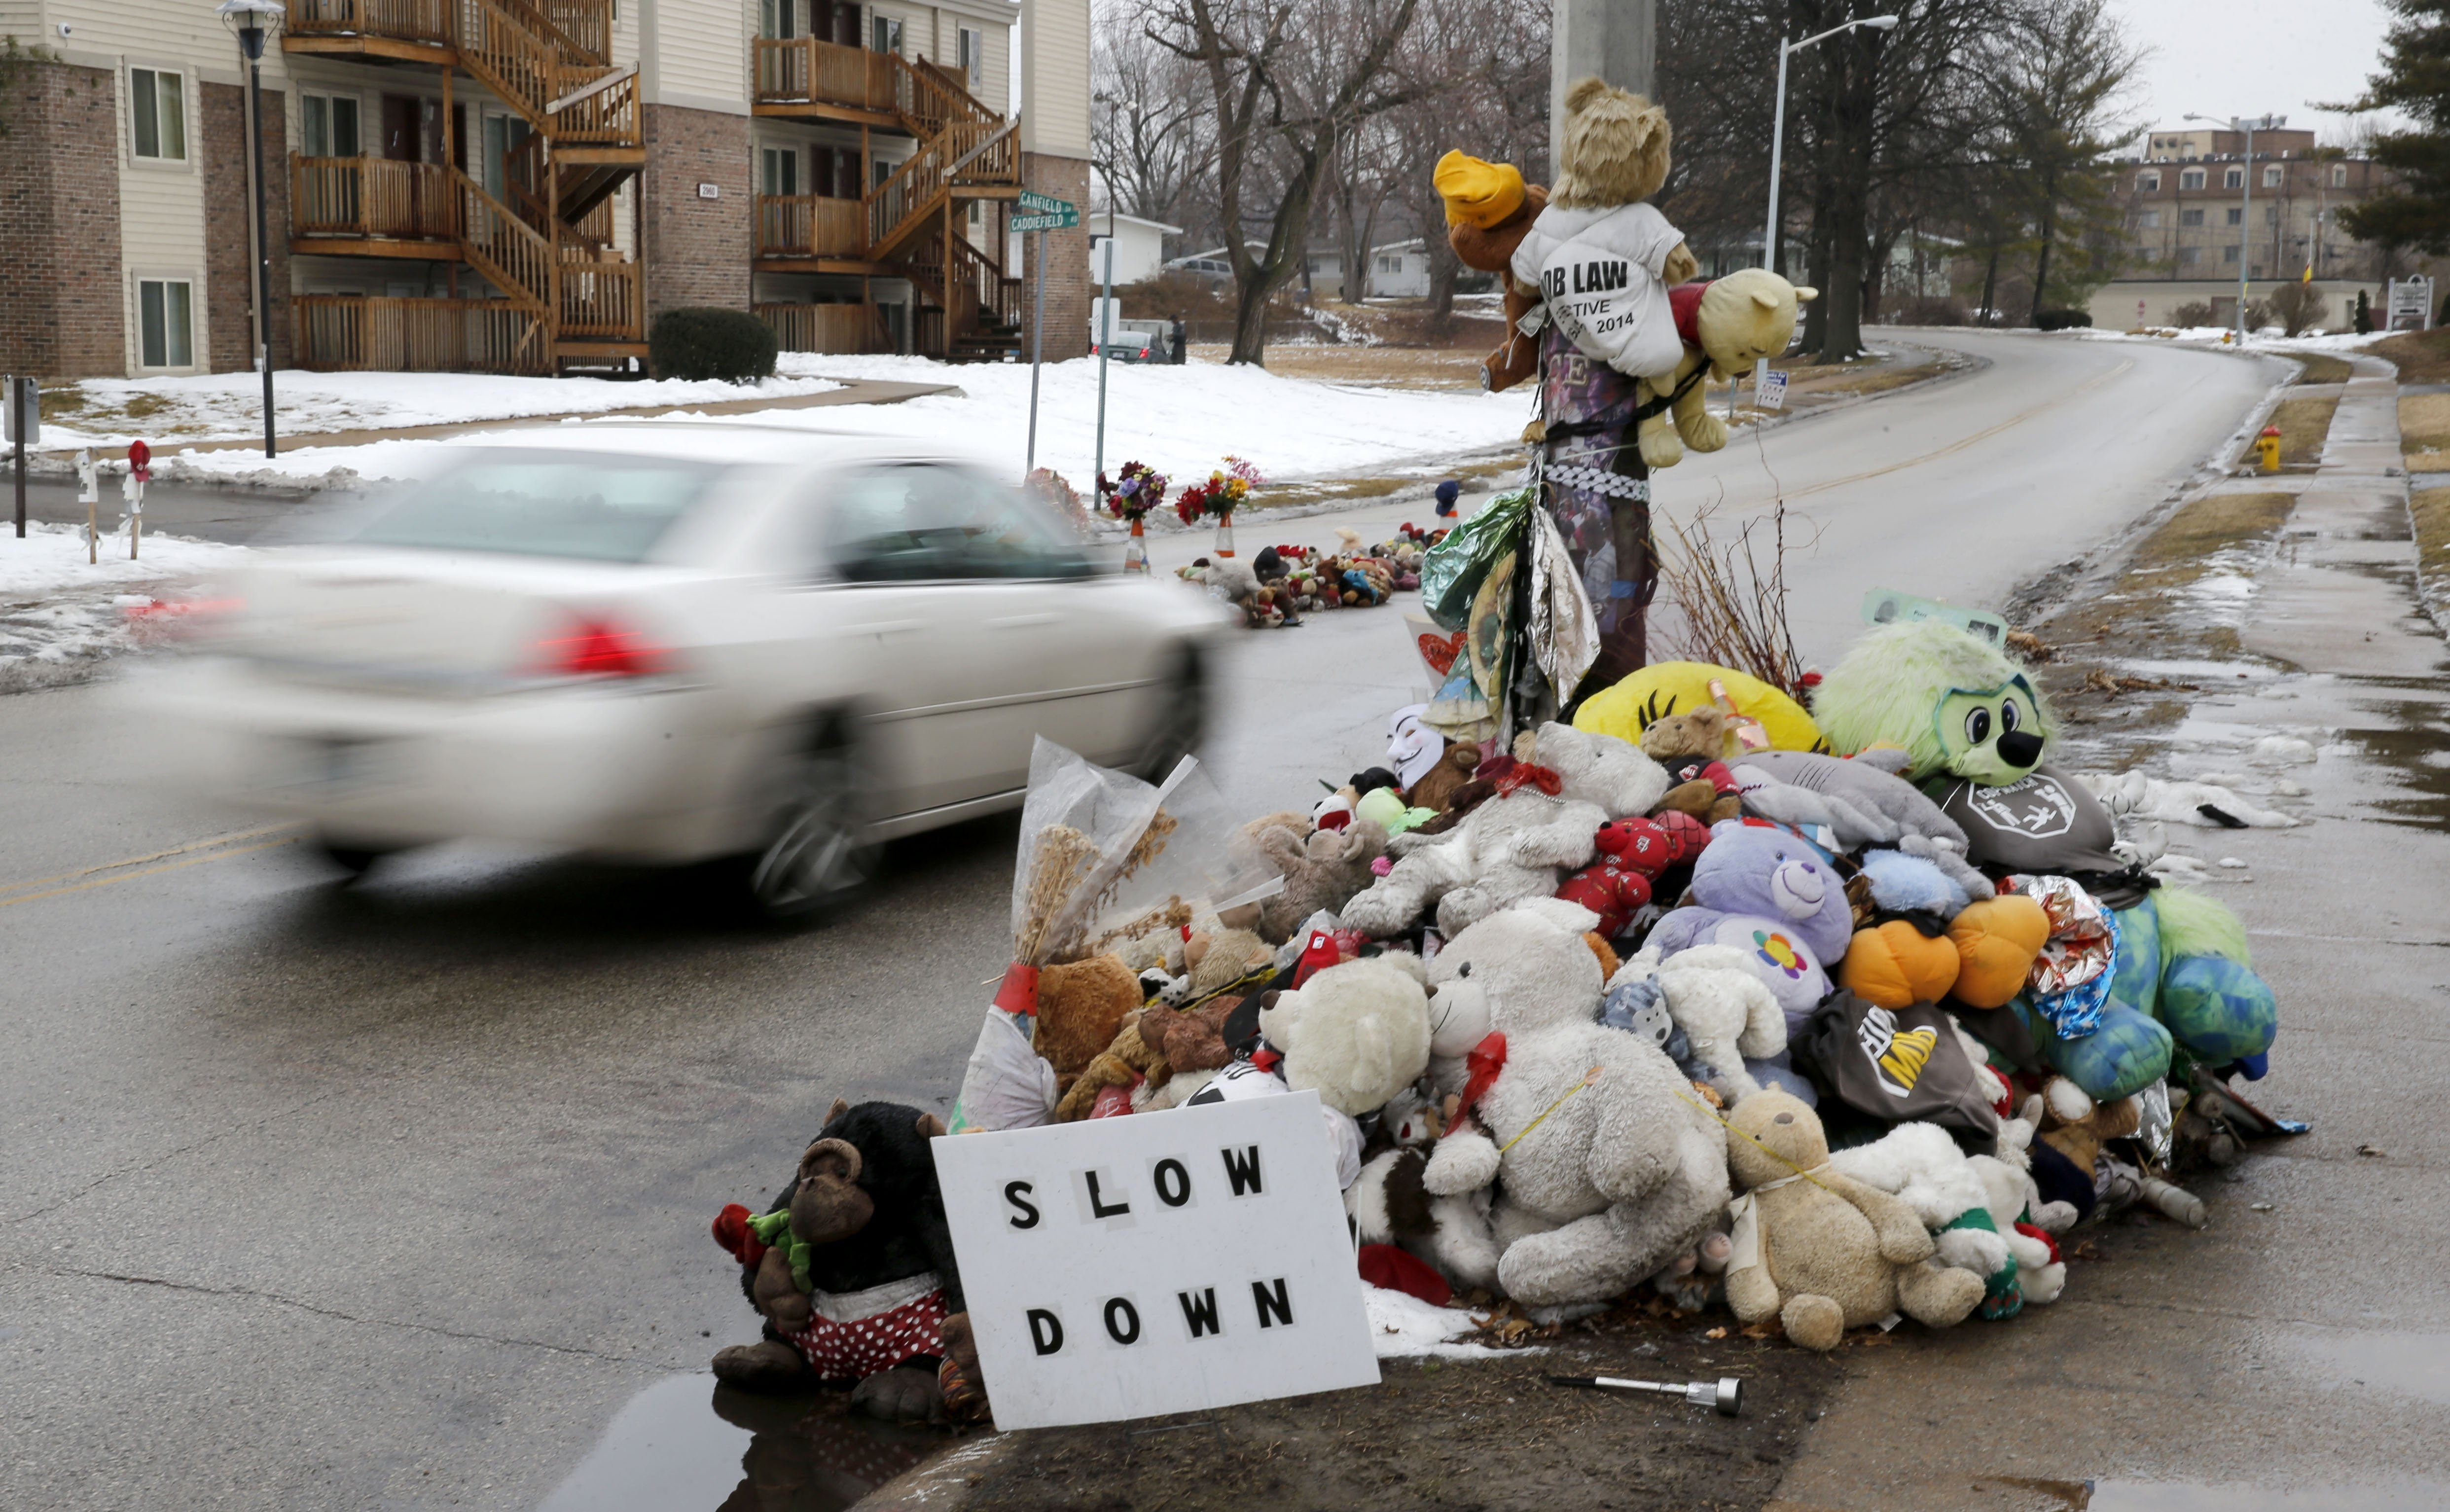 A car passes a memorial for Michael Brown, who was shot and killed by Ferguson, Mo., Police Officer Darren Wilson last summer, March 3, 2015, in Ferguson, Mo.